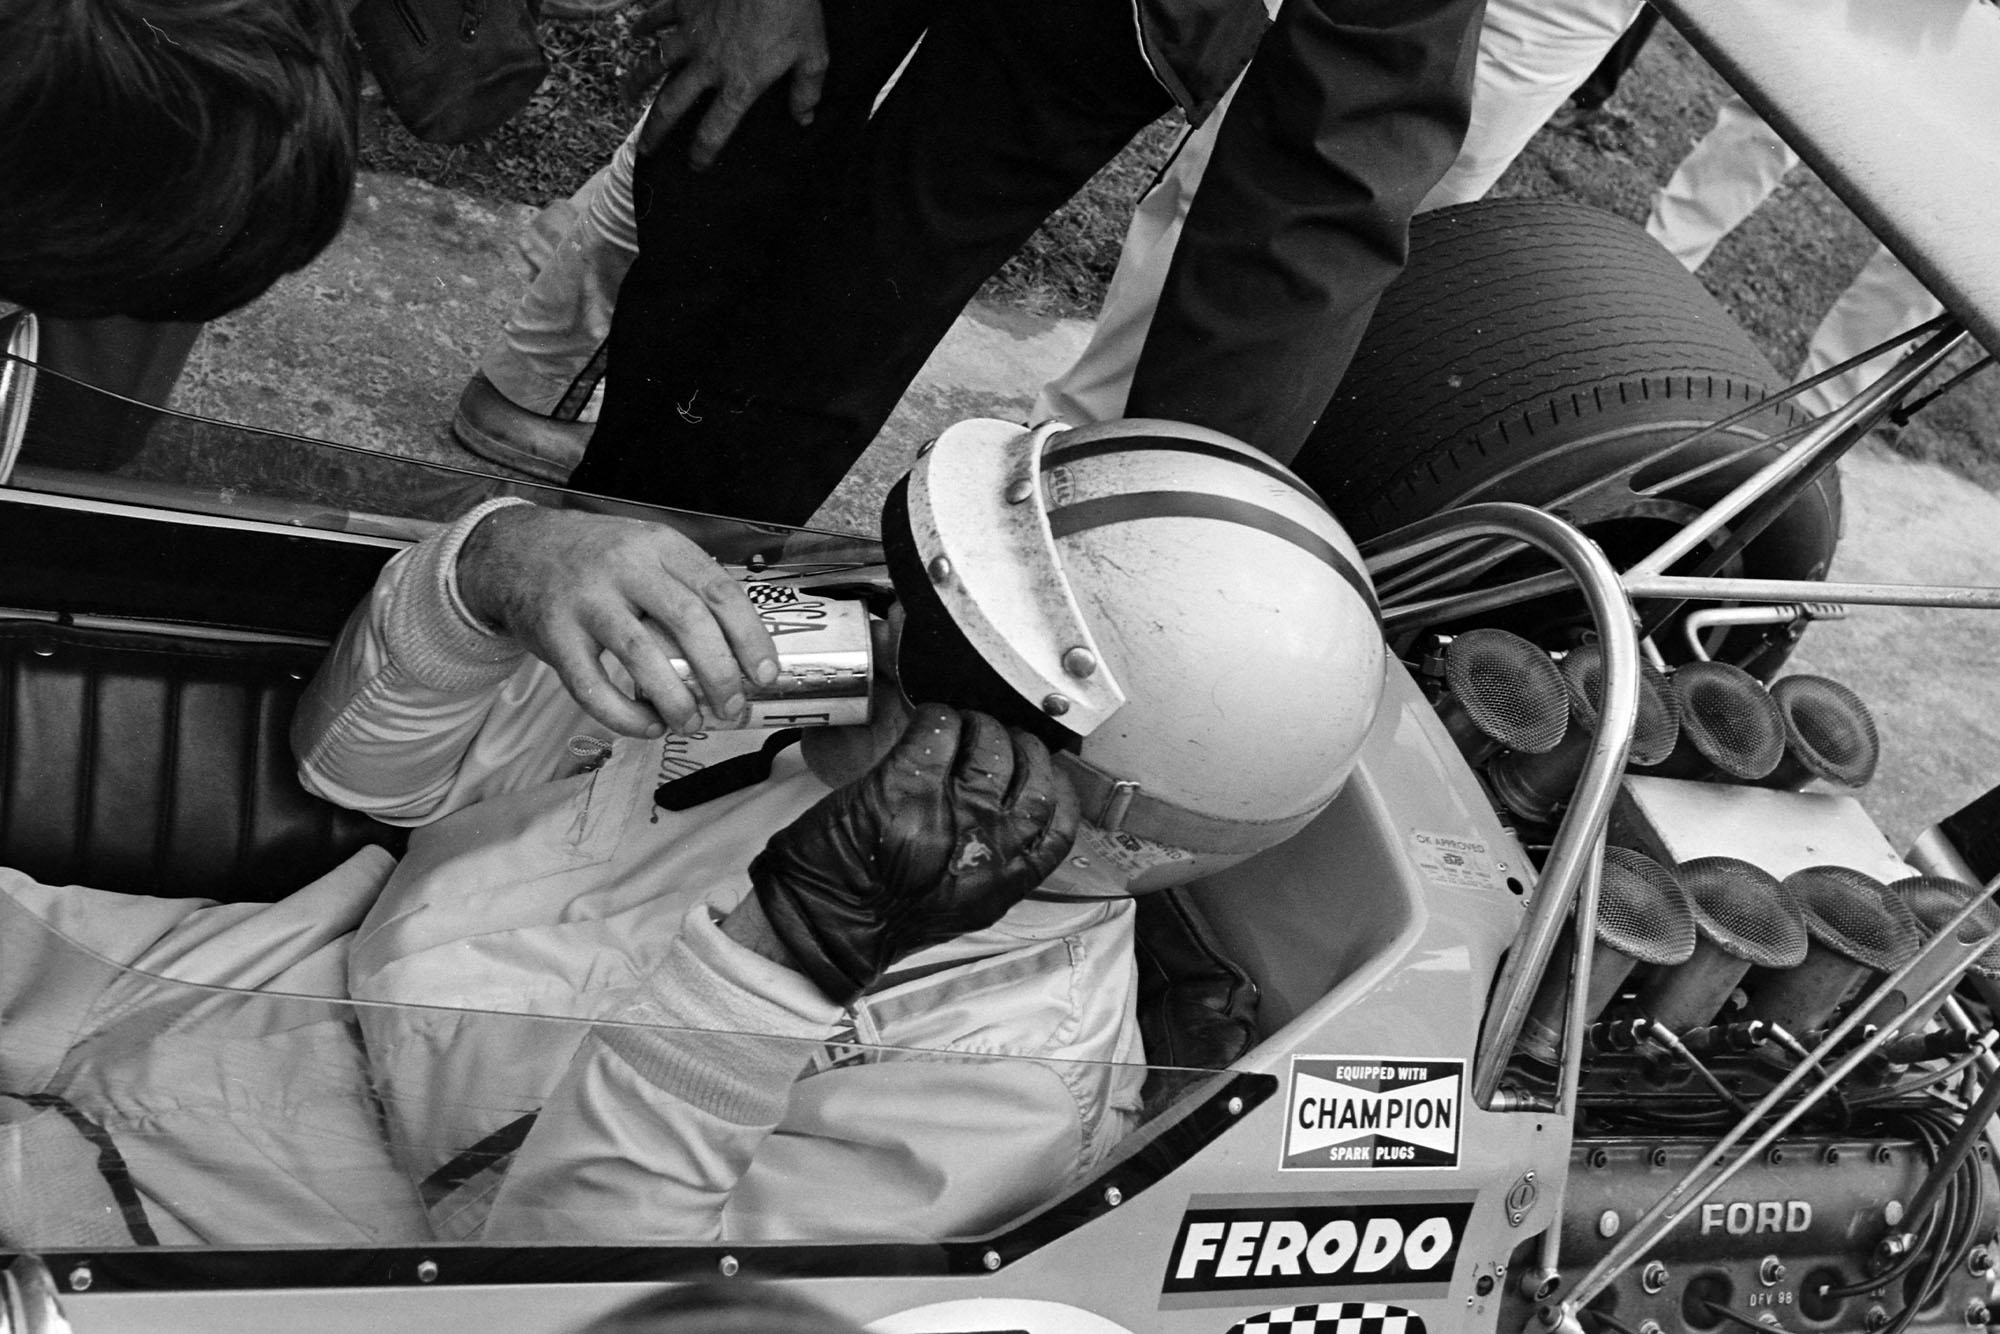 Denny Hulme takes a drink after winning the 1968 Canadian Grand Prix.